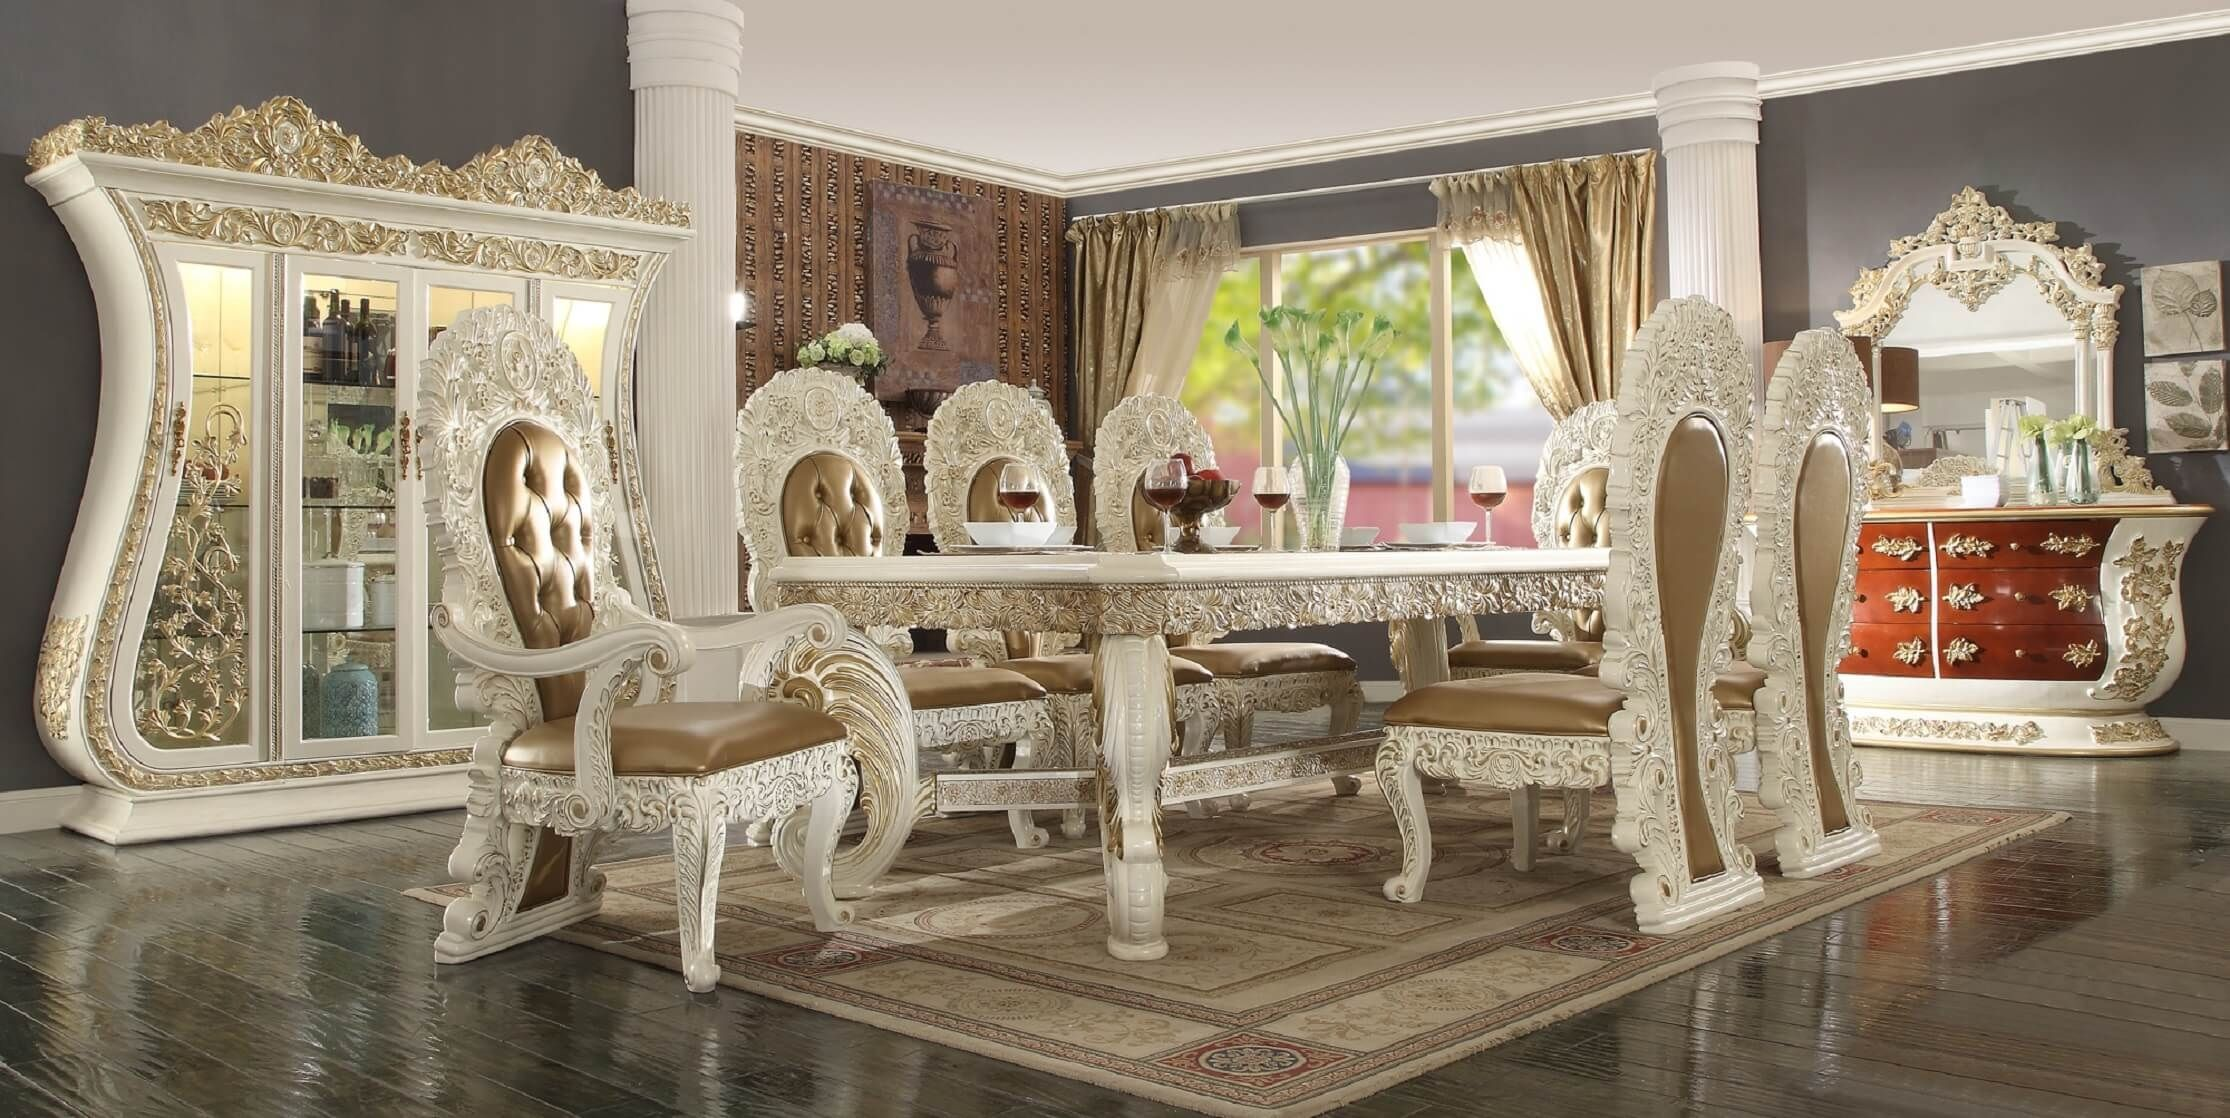 Homey Design Hd 8019 Palazzo Dining Set Antique Cream Usa Furniture Warehouse Luxury Home Furniture Rectangular Dining Table Luxury Dining Room #warehouse #living #room #furniture